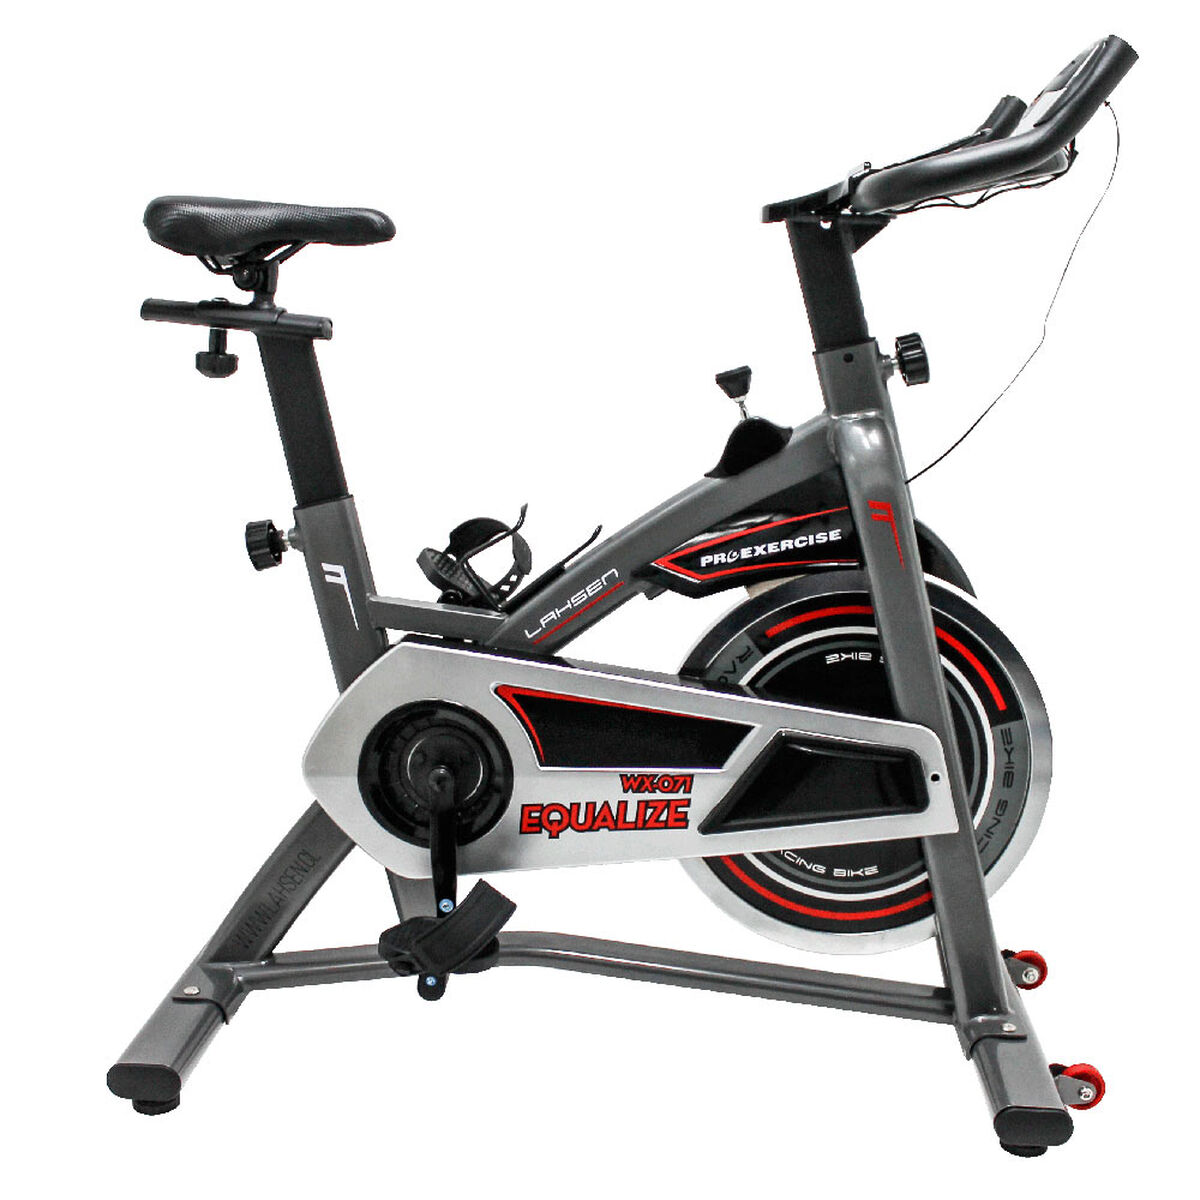 Bicicleta Spinning Lahsen Mecanica WX-071 Equalize